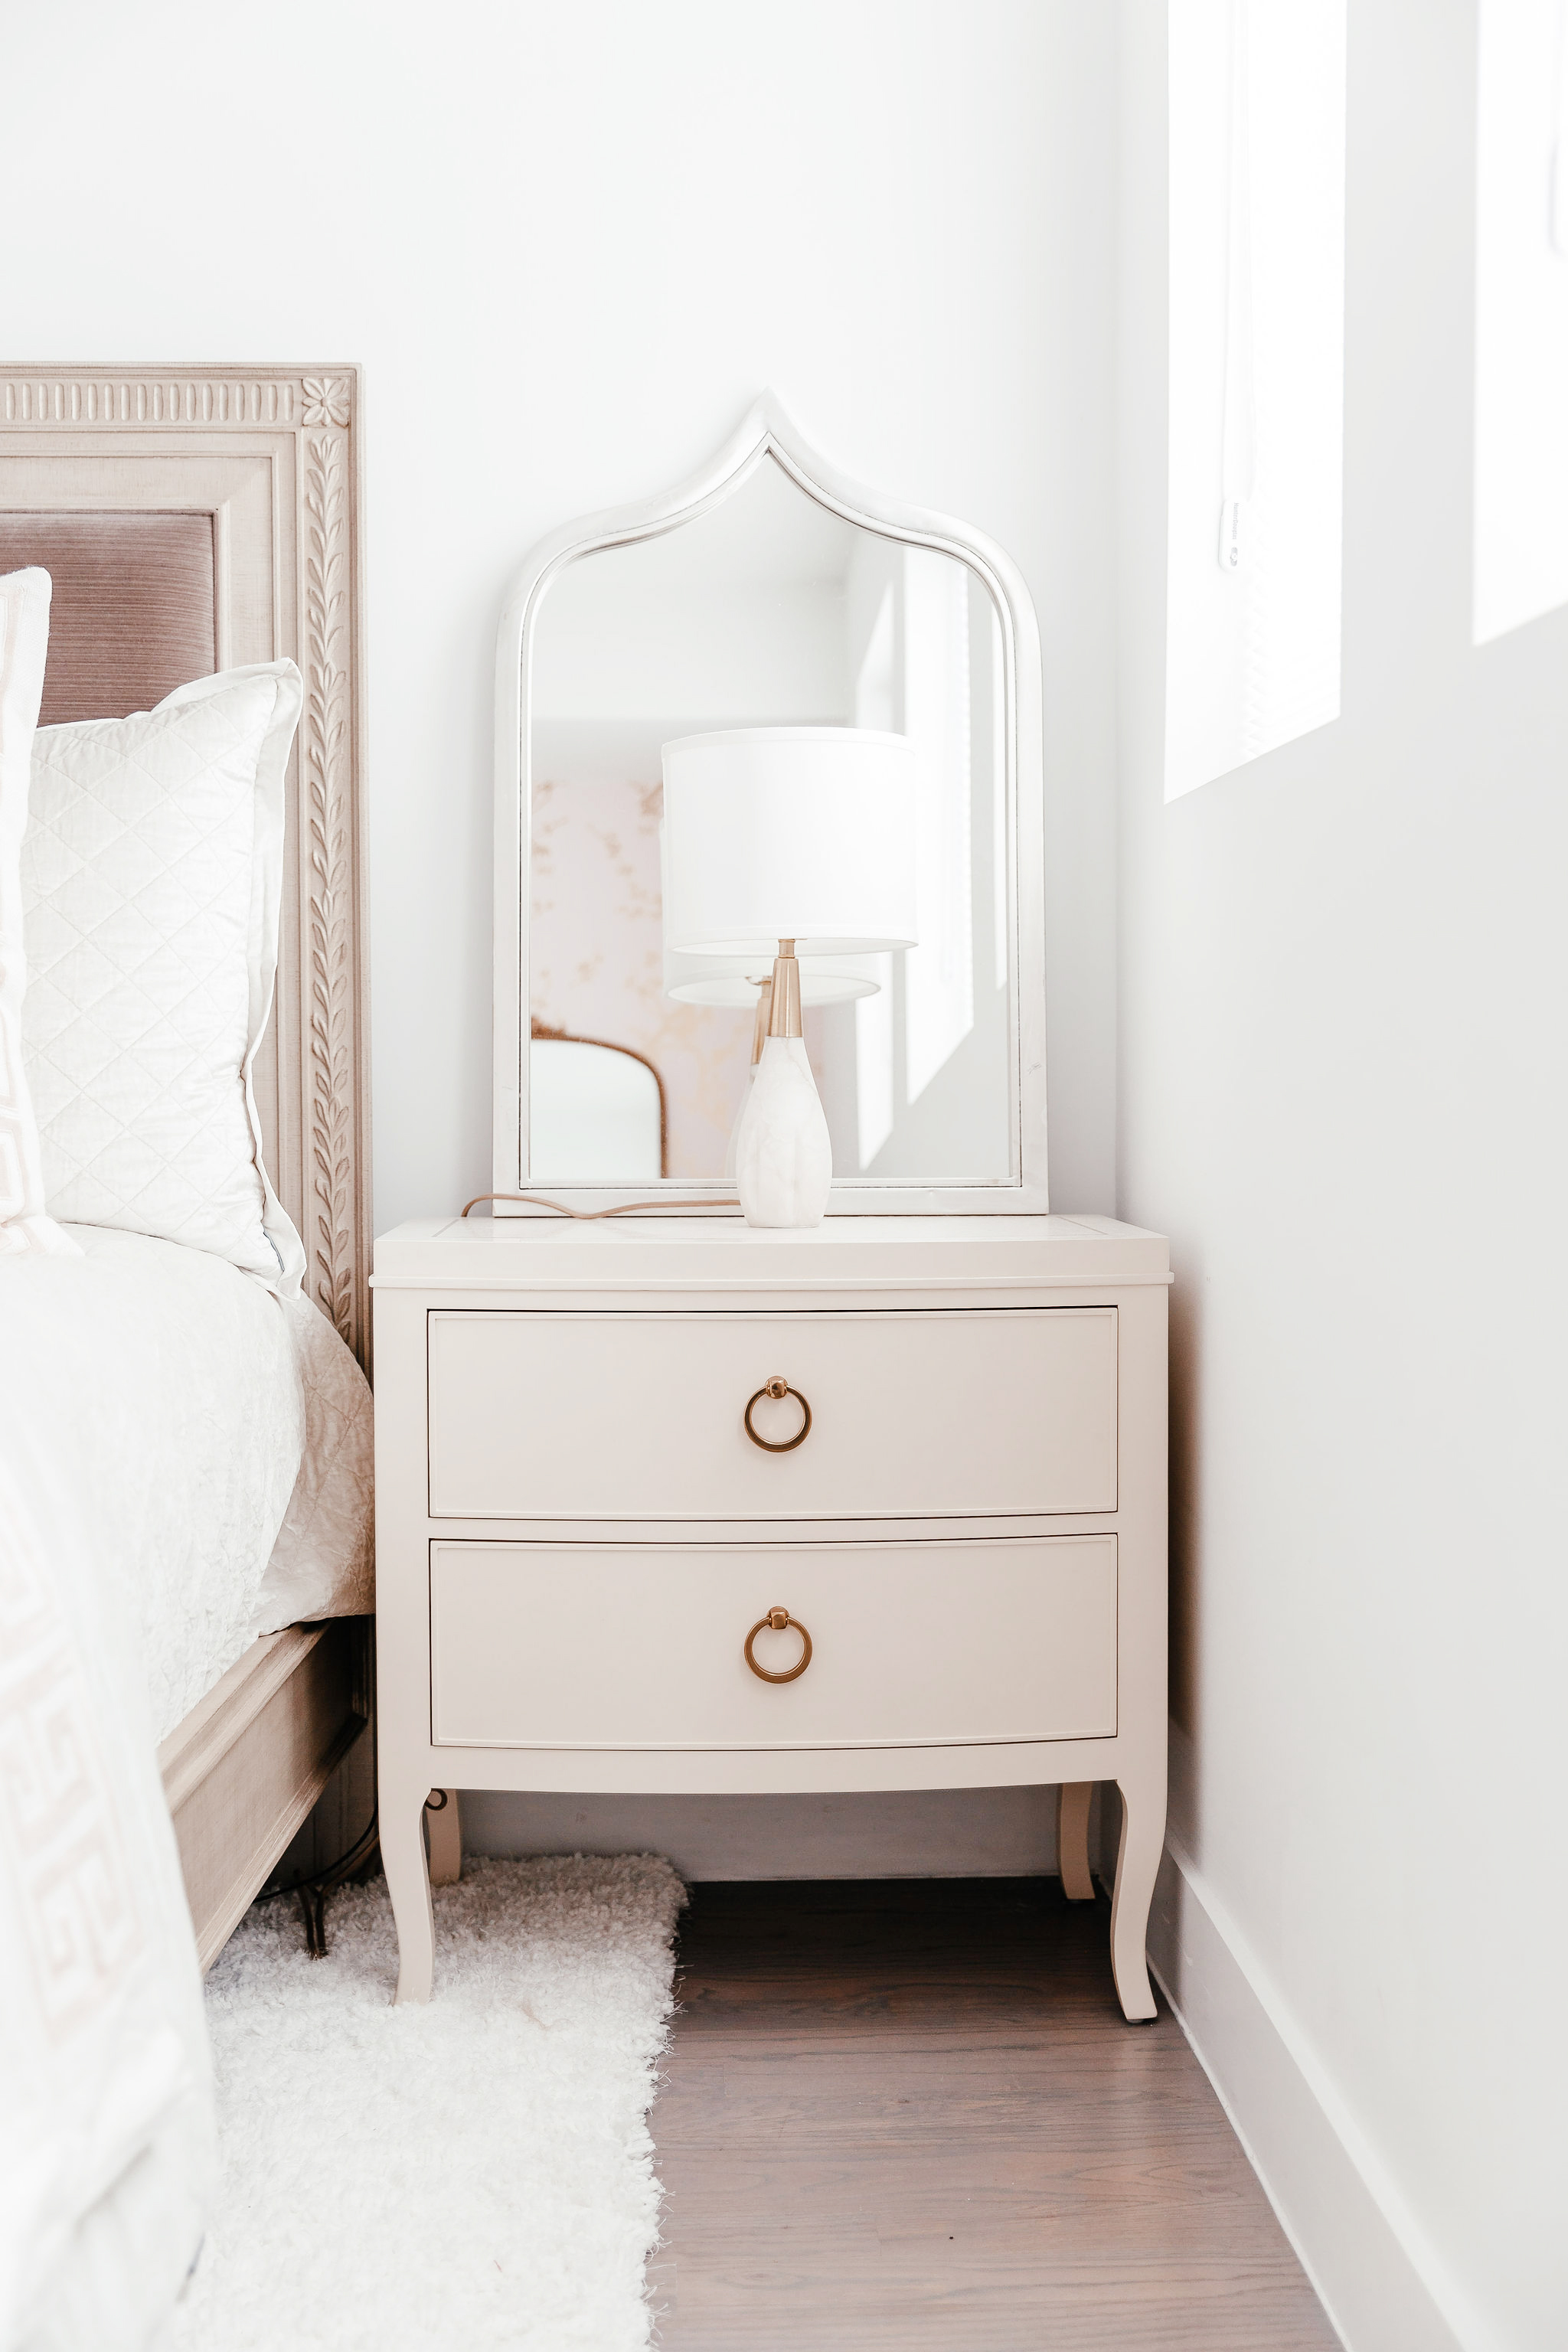 5 Quick Steps To Double Your Bedroom Space Kathy Kuo Blog